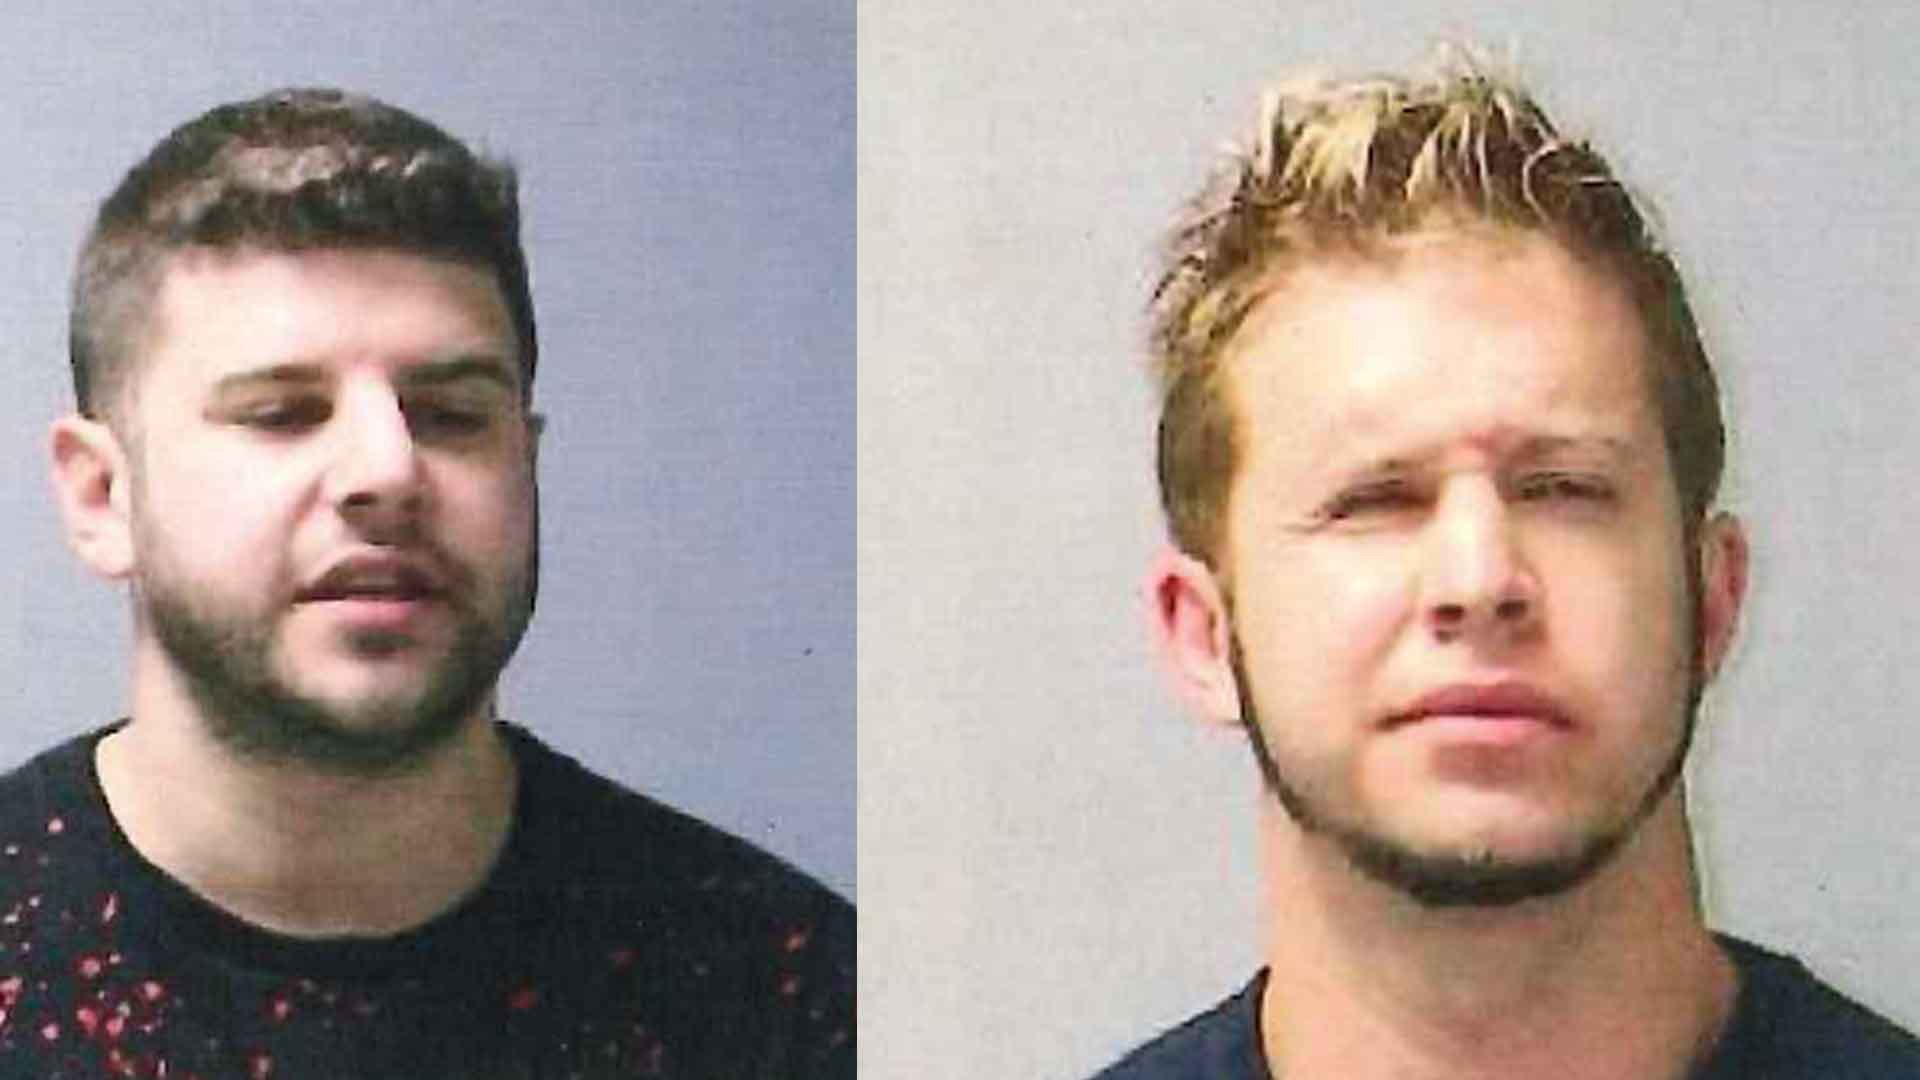 Nicholas and Anthony Diorio were arrested for for shouting ethnic slurs and vulgarity towards a family at Bradley International Airport early Thursday morning.